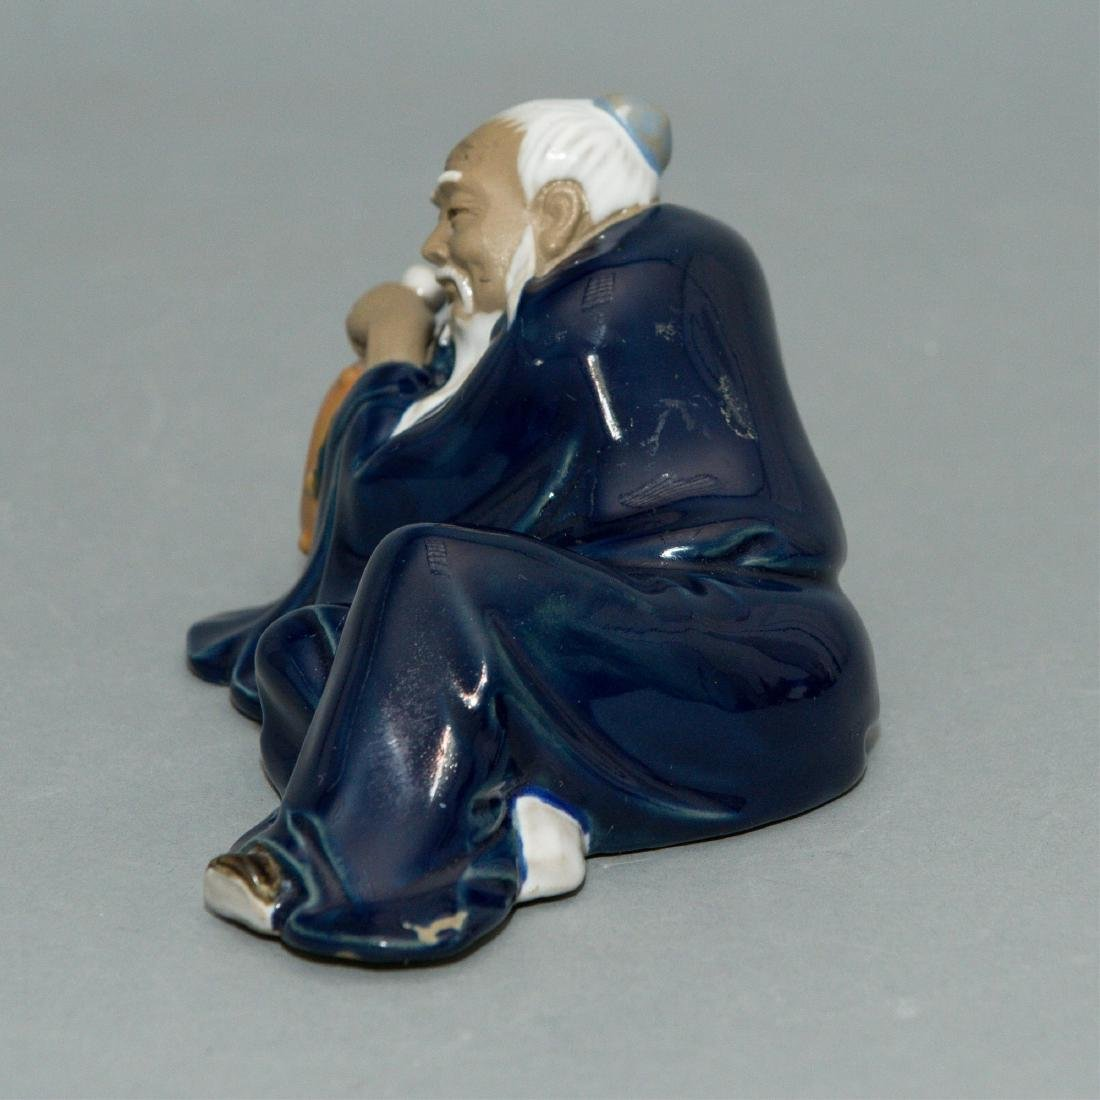 CHINESE MUDMAN FIGURINE, MID-20TH CENTURY - 2